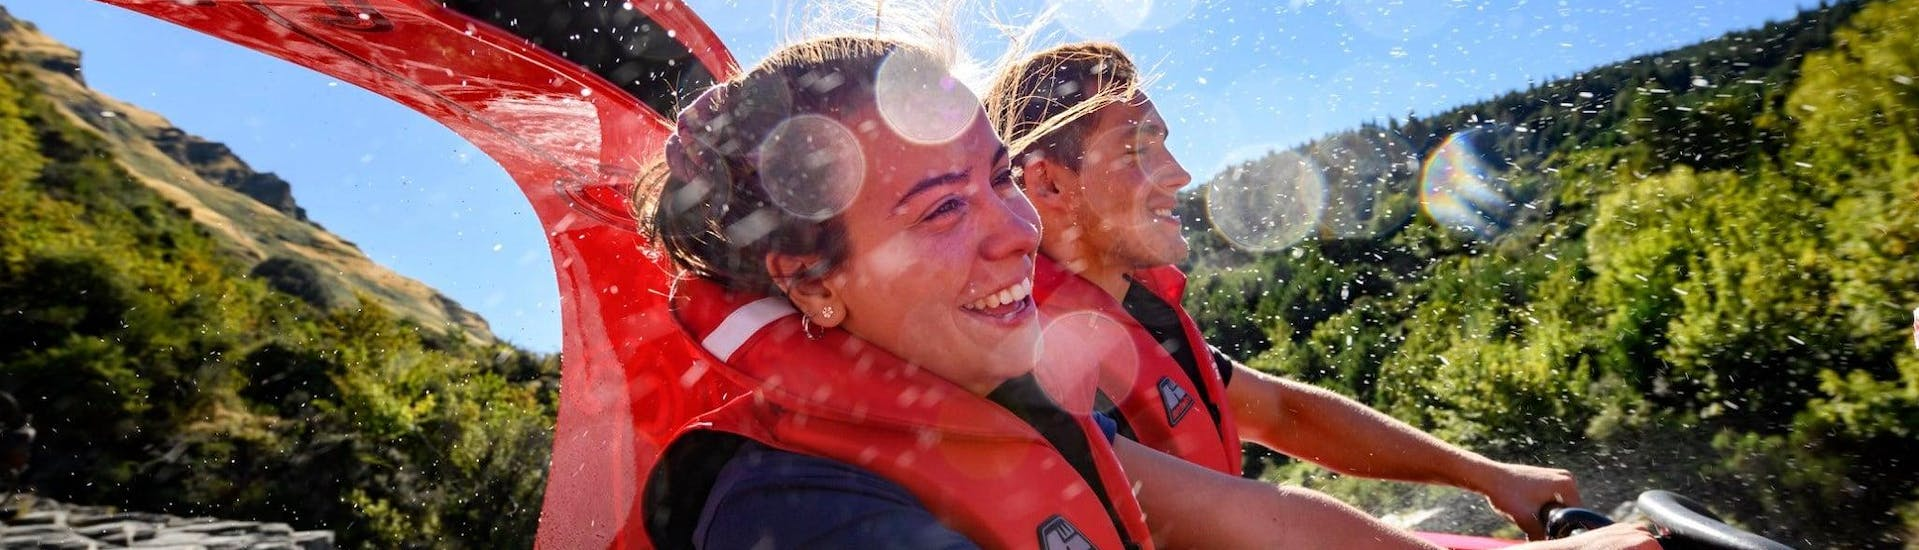 Participants of the Queenstown Jet Boat Tour to Shotover Canyon & 4x4 Experience organized by Shotover Jet Queenstown have fun on the boat.